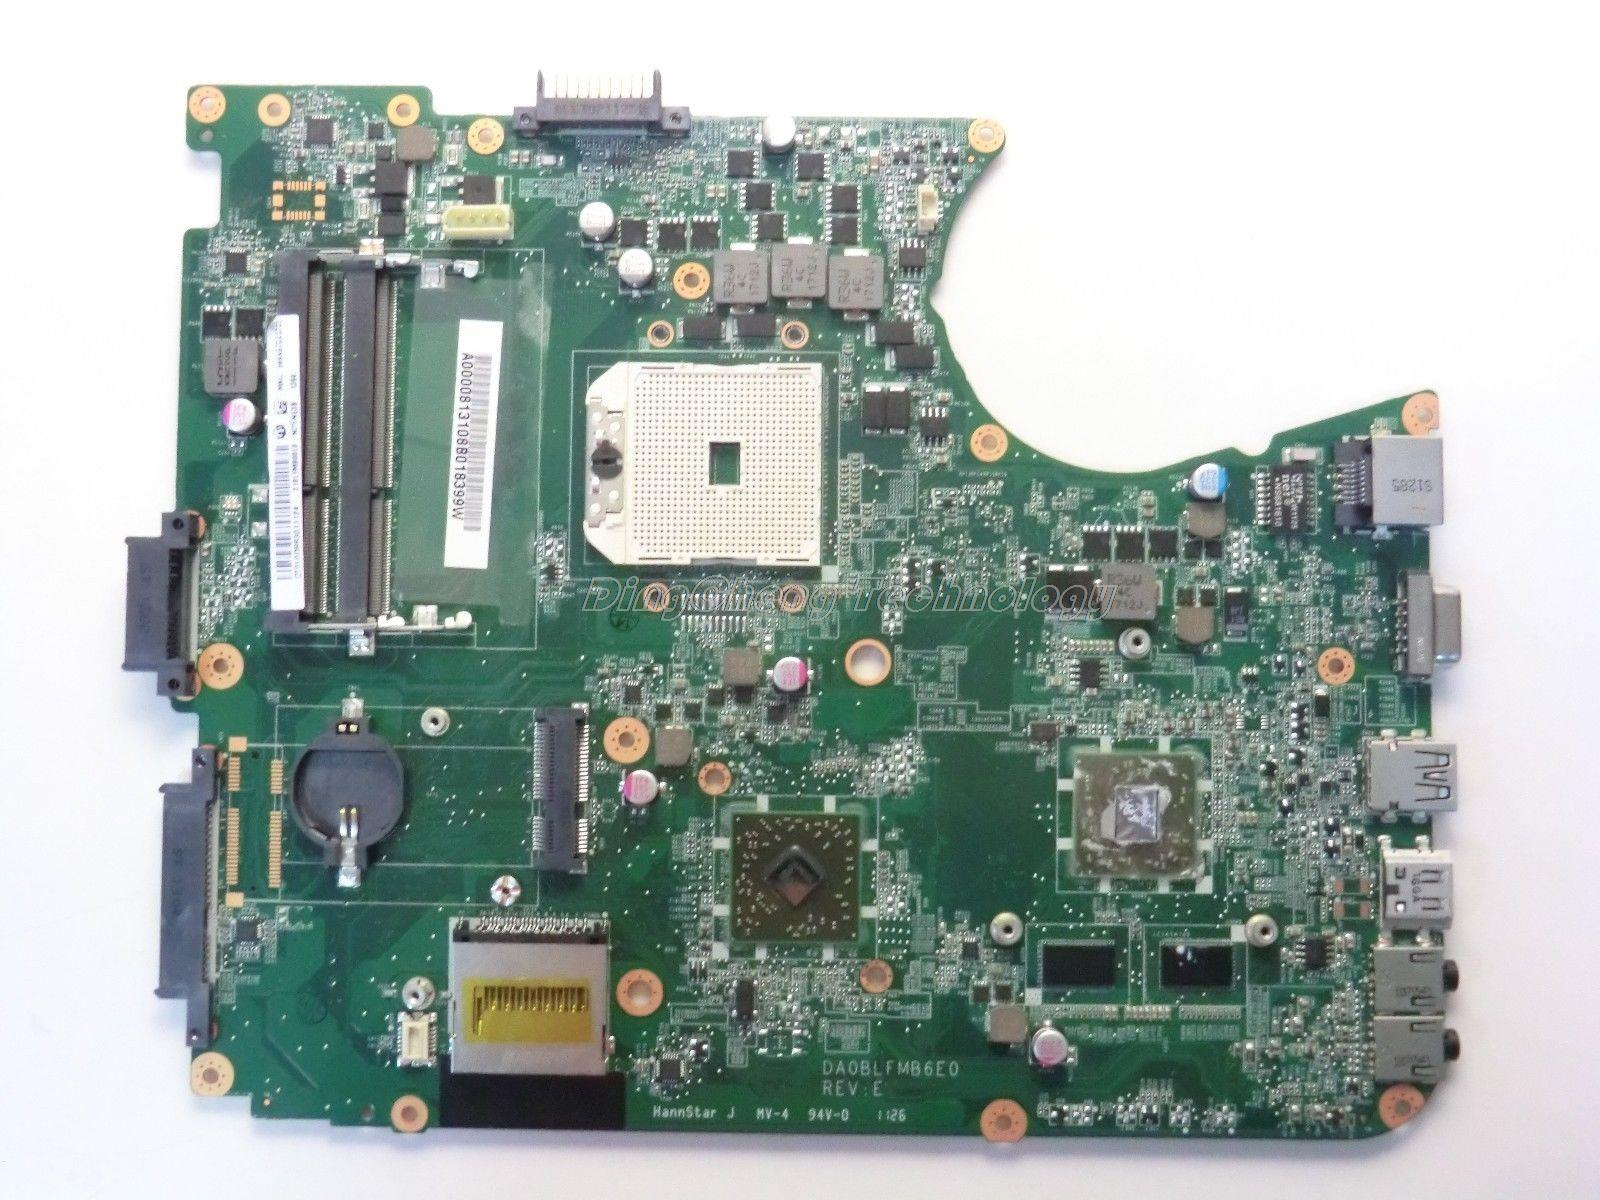 SHELI laptop Motherboard For Toshiba Satellite L750 L755 A000081310 DA0BLFMB6E0 DDR3 non-integrated graphics card 100% tested sheli laptop motherboard for toshiba satellite c75d da0bd9mb8f0 a000243970 ddr3 integrated graphics card 100% fully tested